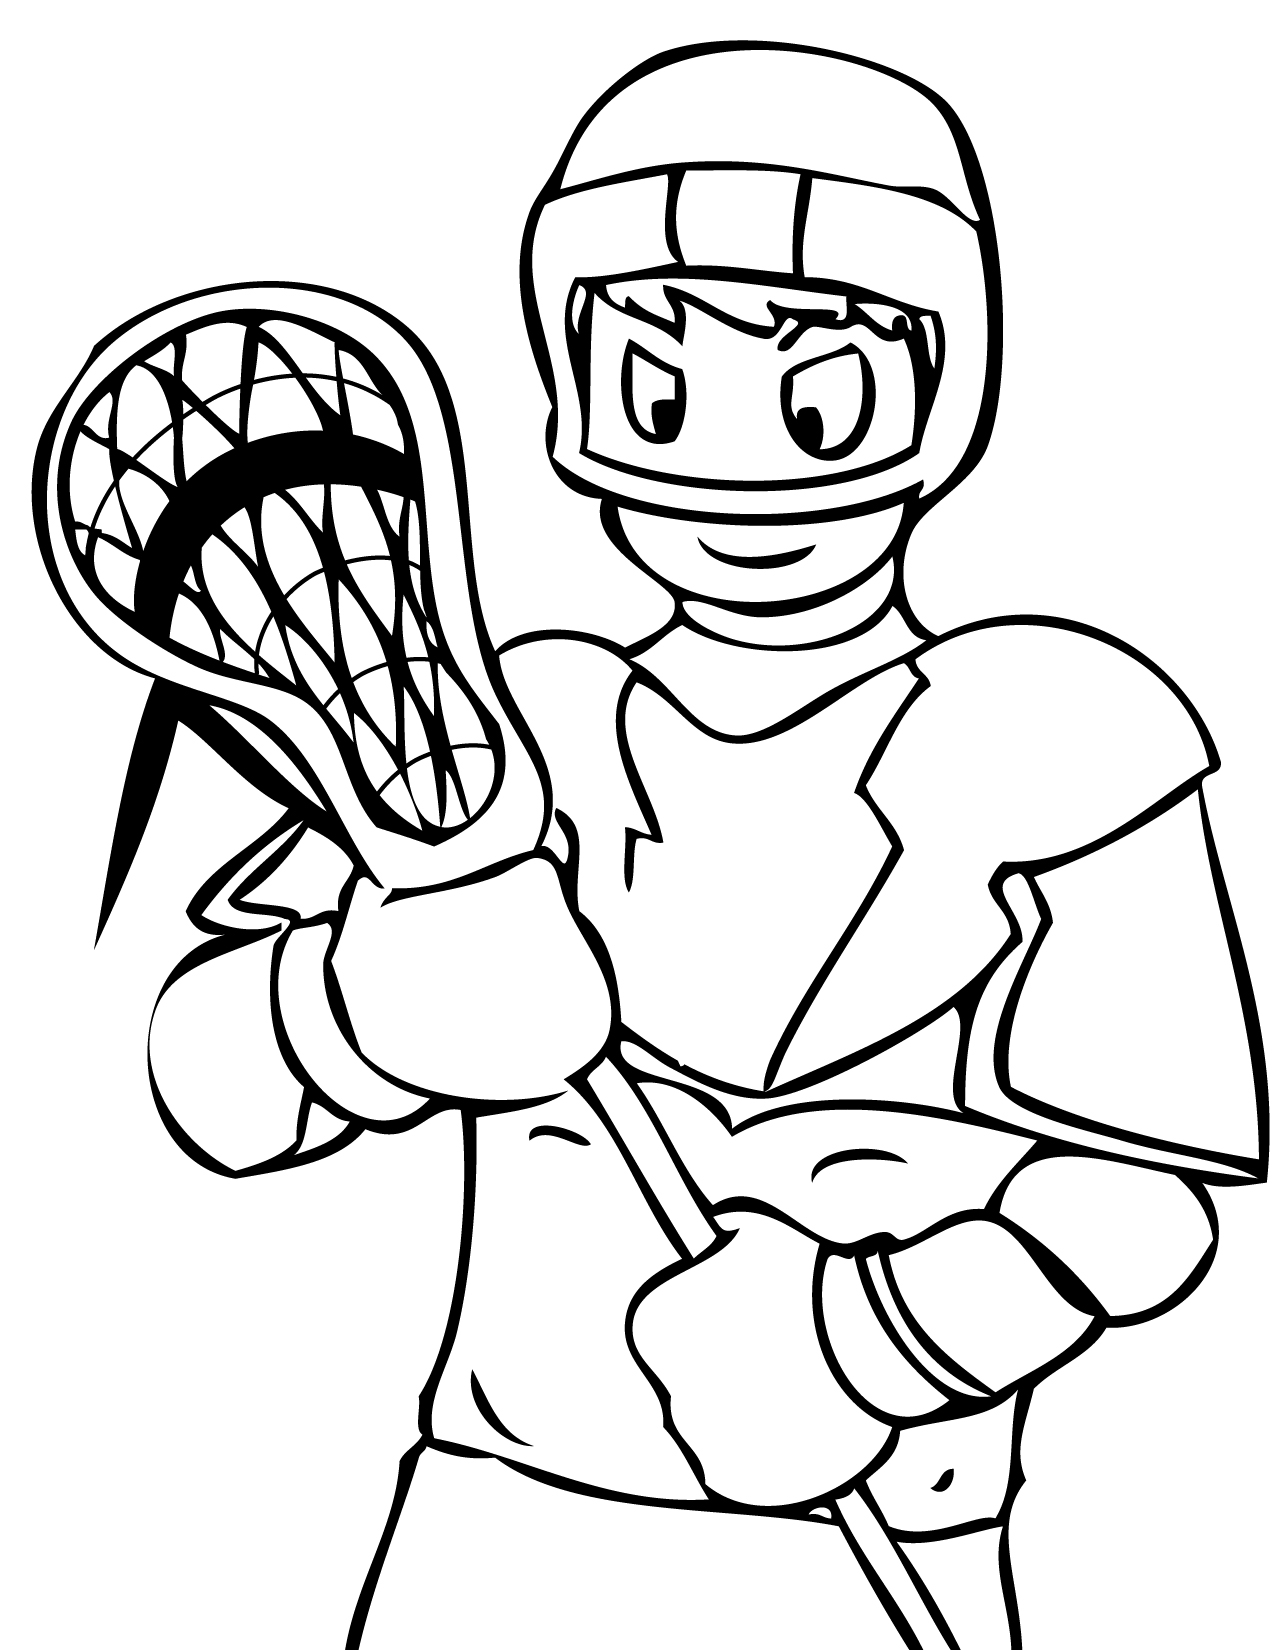 coloring sheets sports sports coloring pages coloring sports sheets